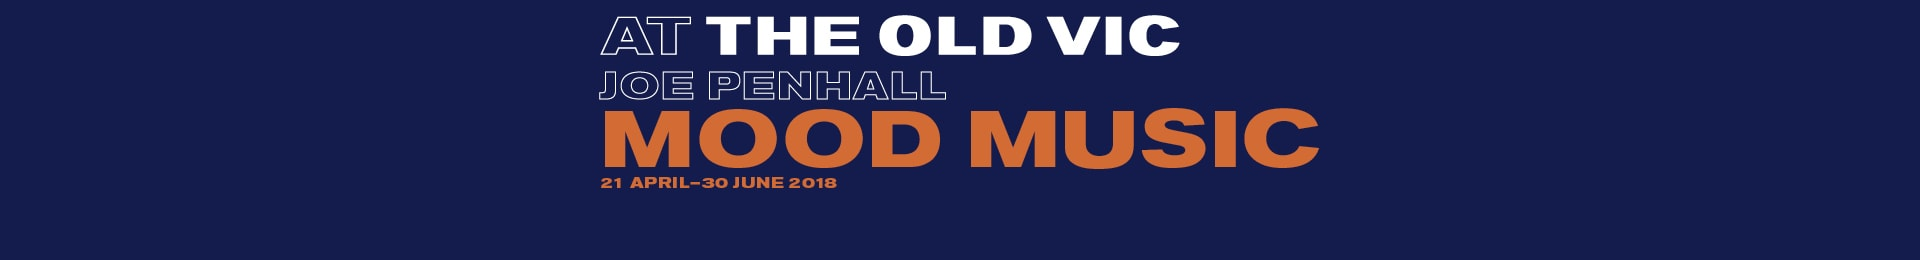 Calling all NHS workers! The Old Vic Theatre will be celebrating 70 years of the NHS with a special performance of monologues